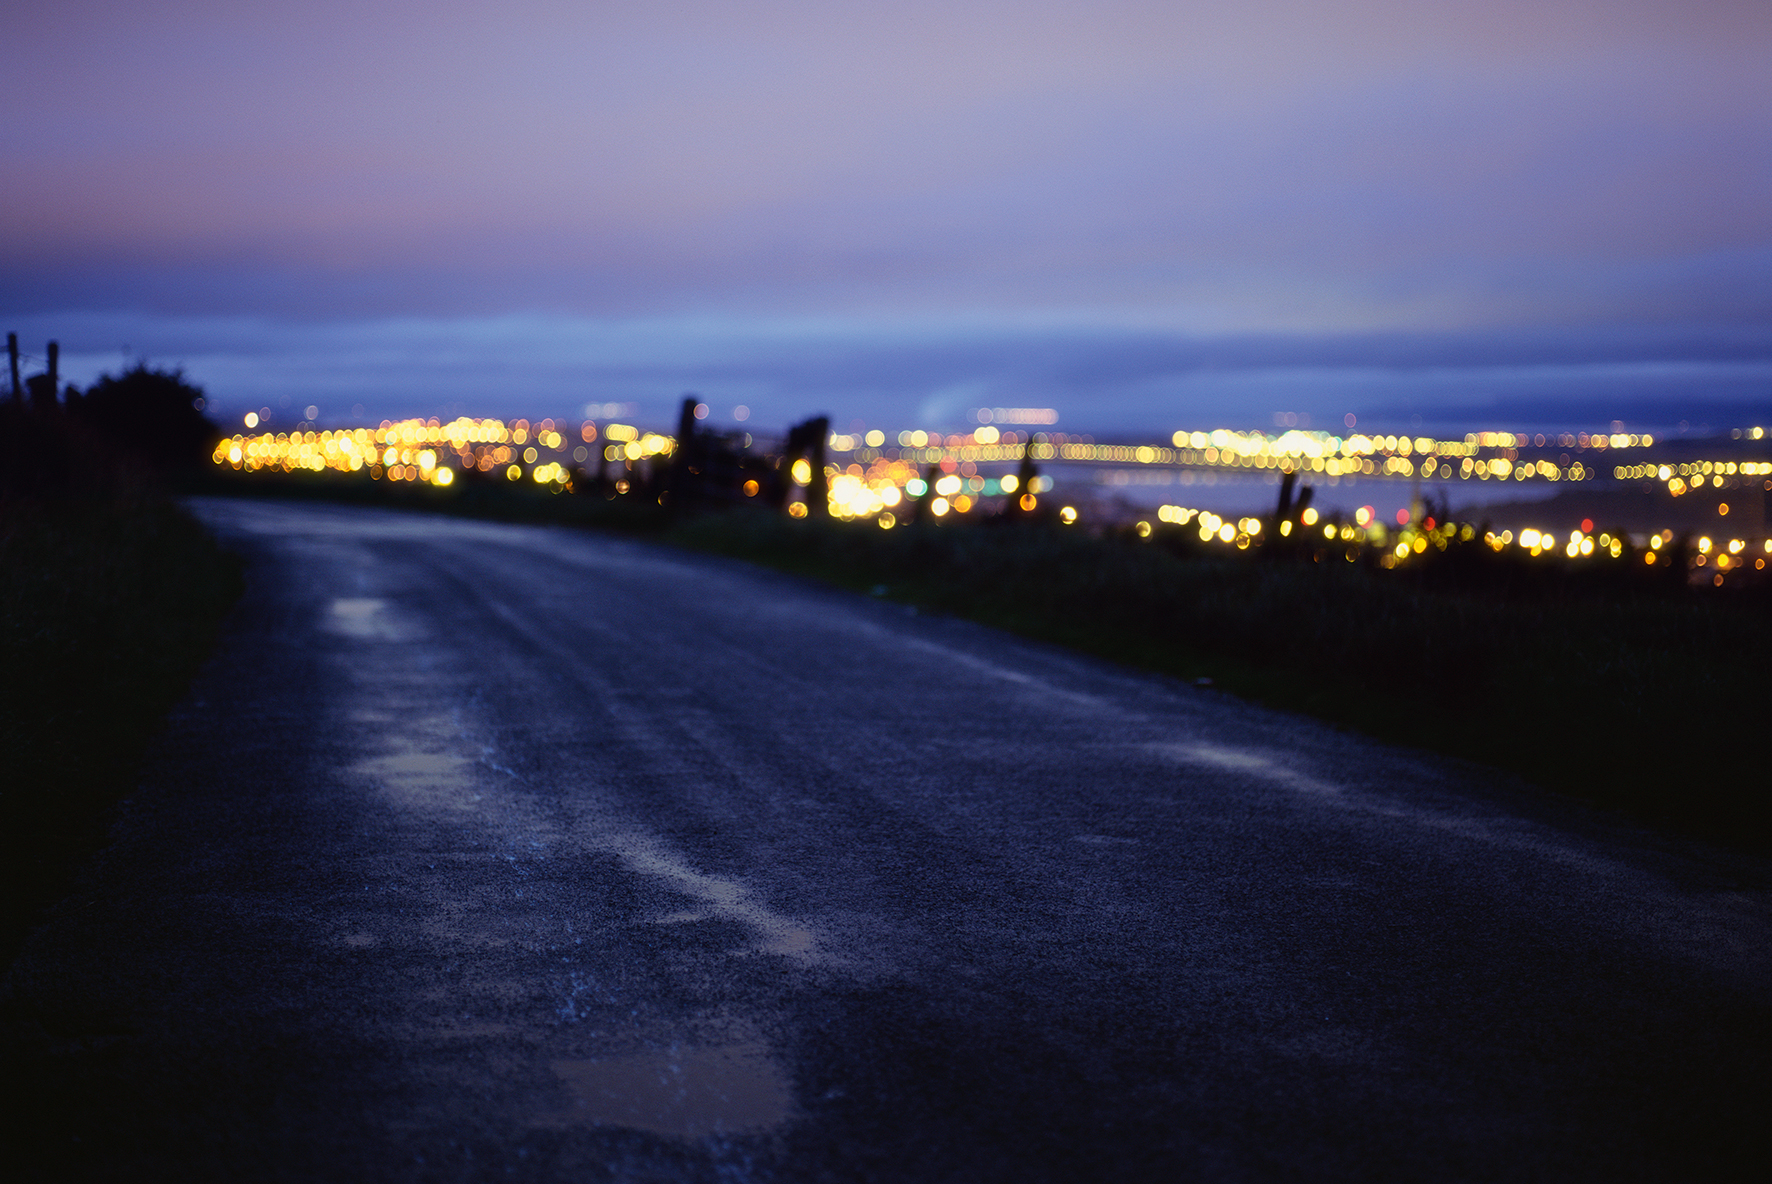 The Road Ahead, title of photography by Derry artist Willie Doherty, featured as part of group exhibition Opened Ground at Void Gallery, 2019